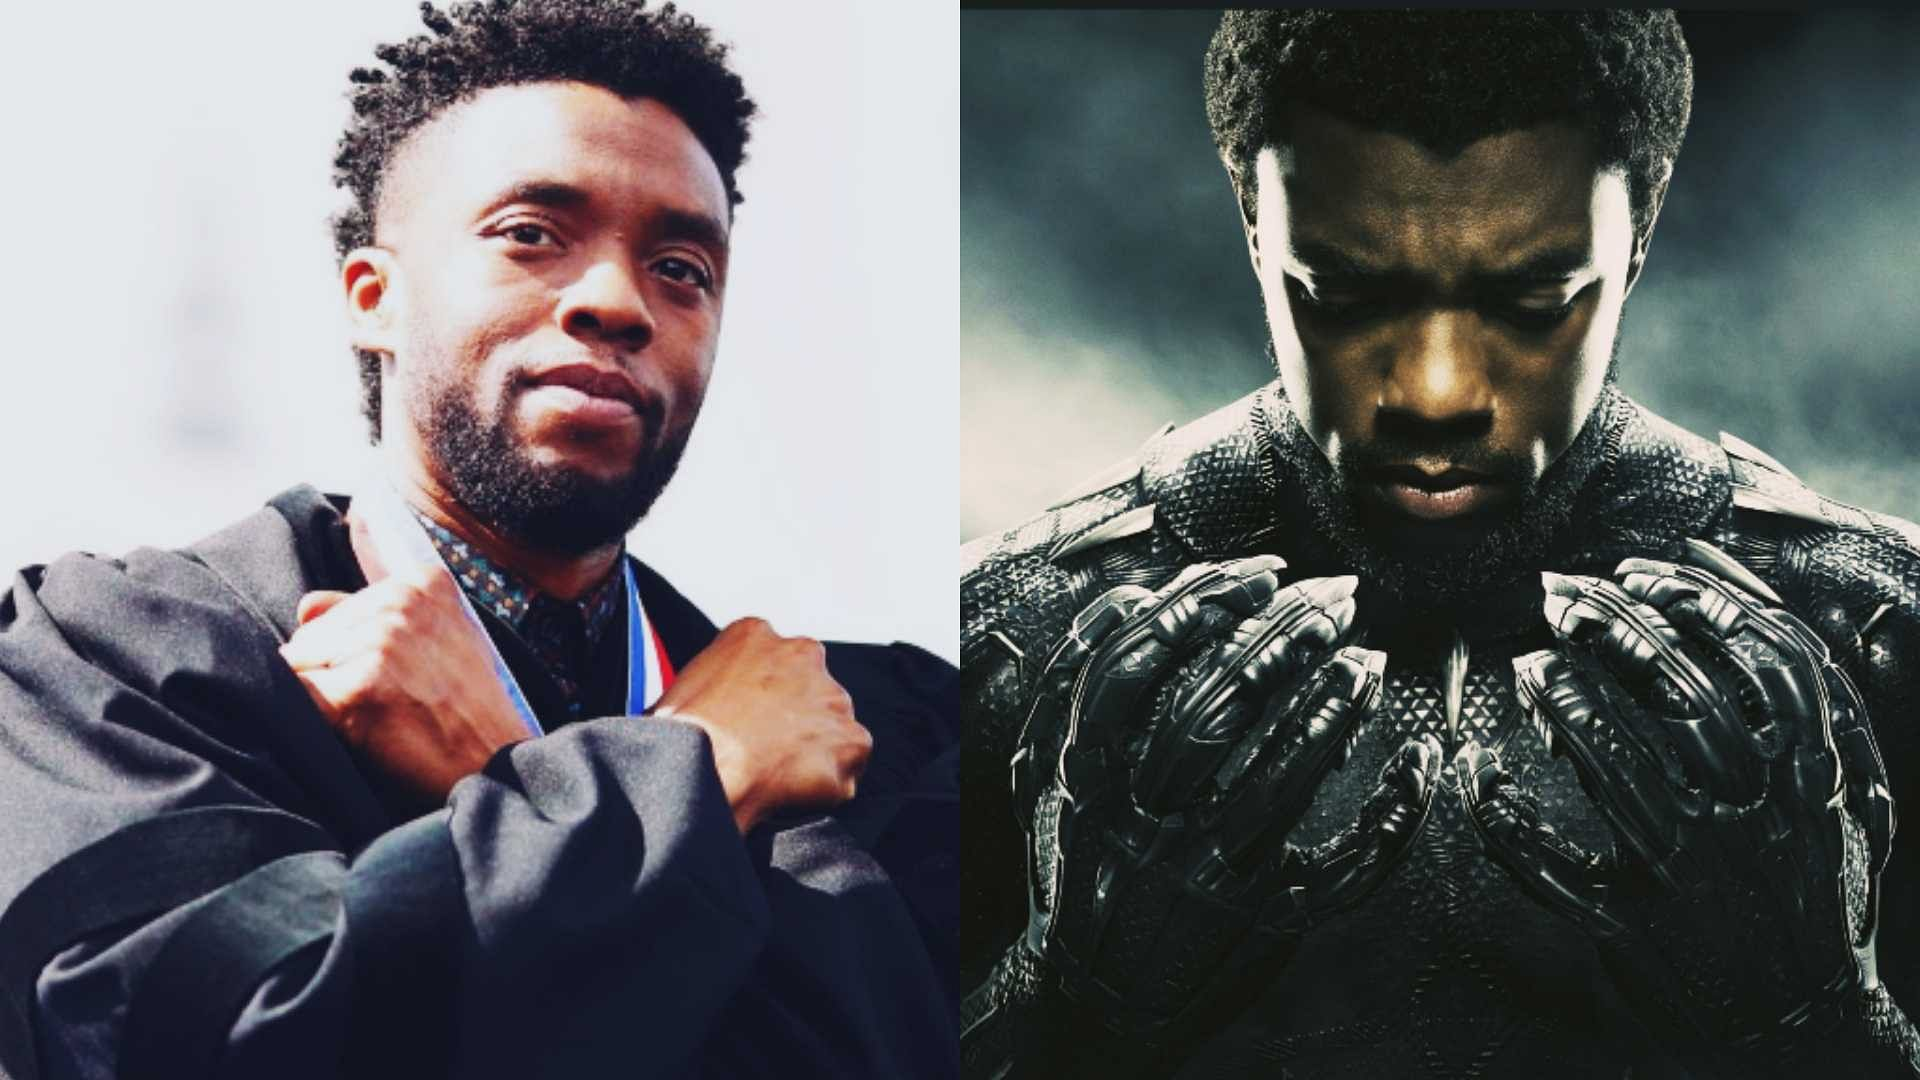 We Will Love You Forever Twitter Bids Adieu To Black Panther Star Chadwick Boseman